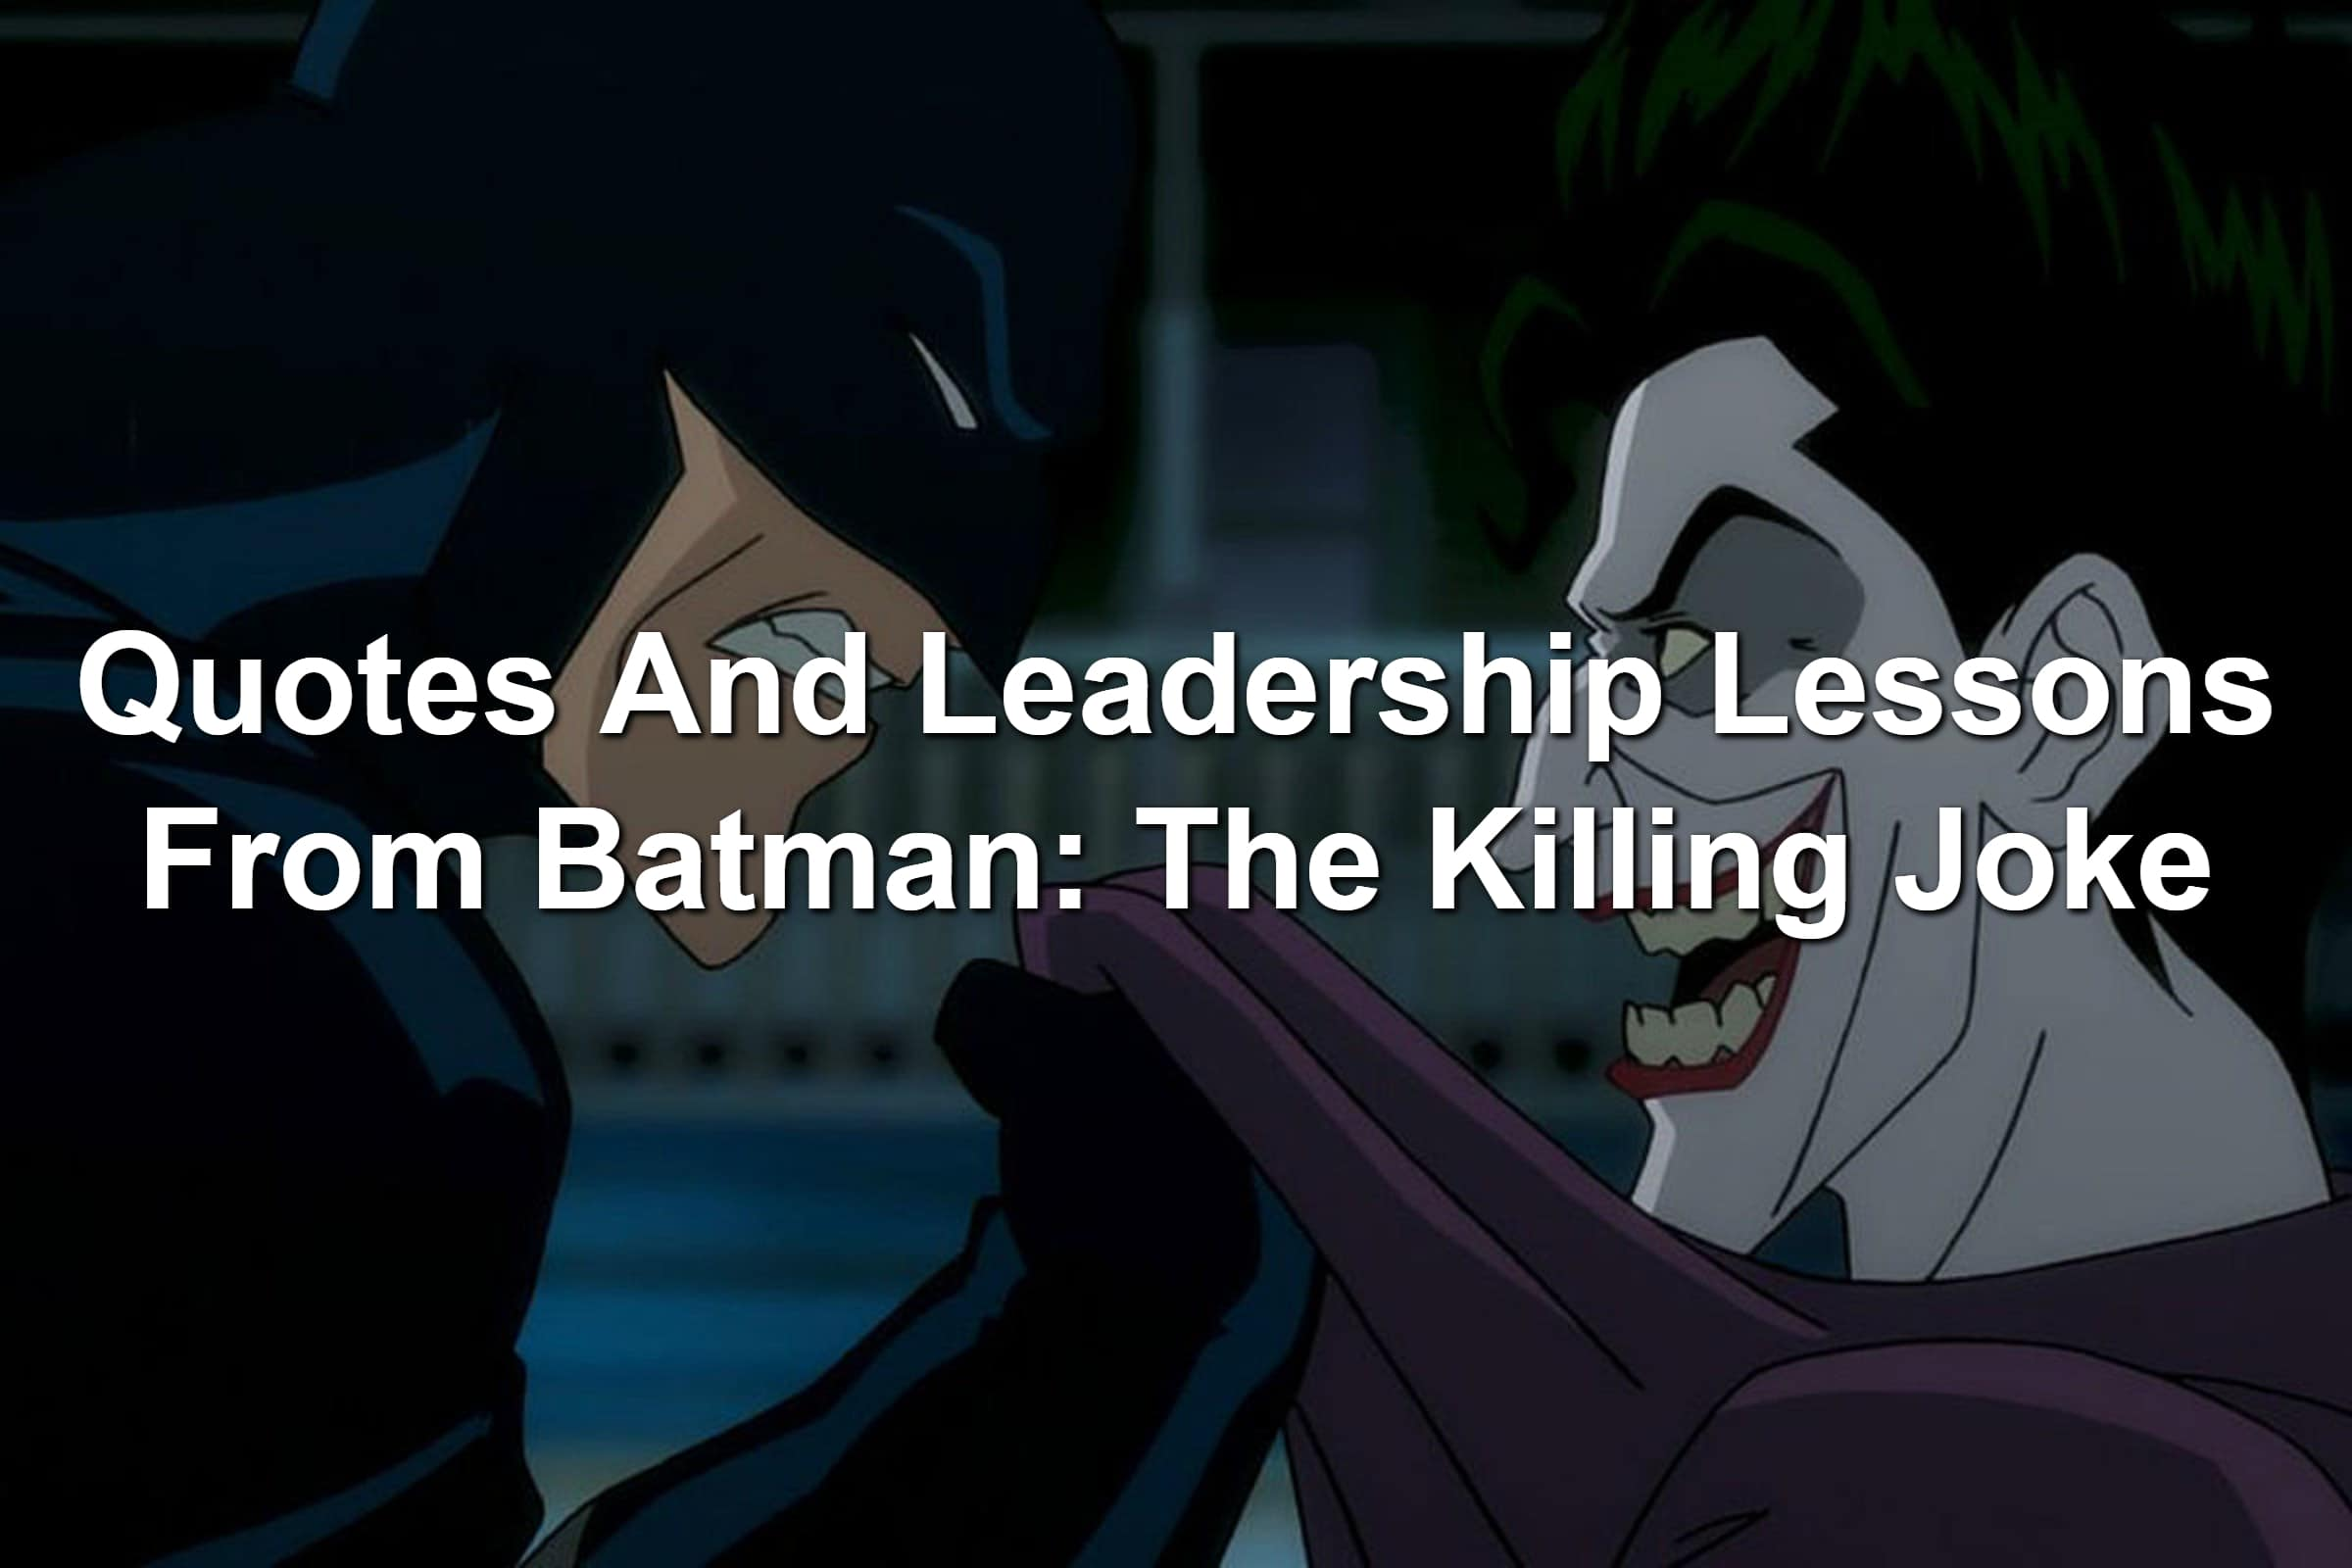 Batman and Joker still from Batman: The Killing Joke